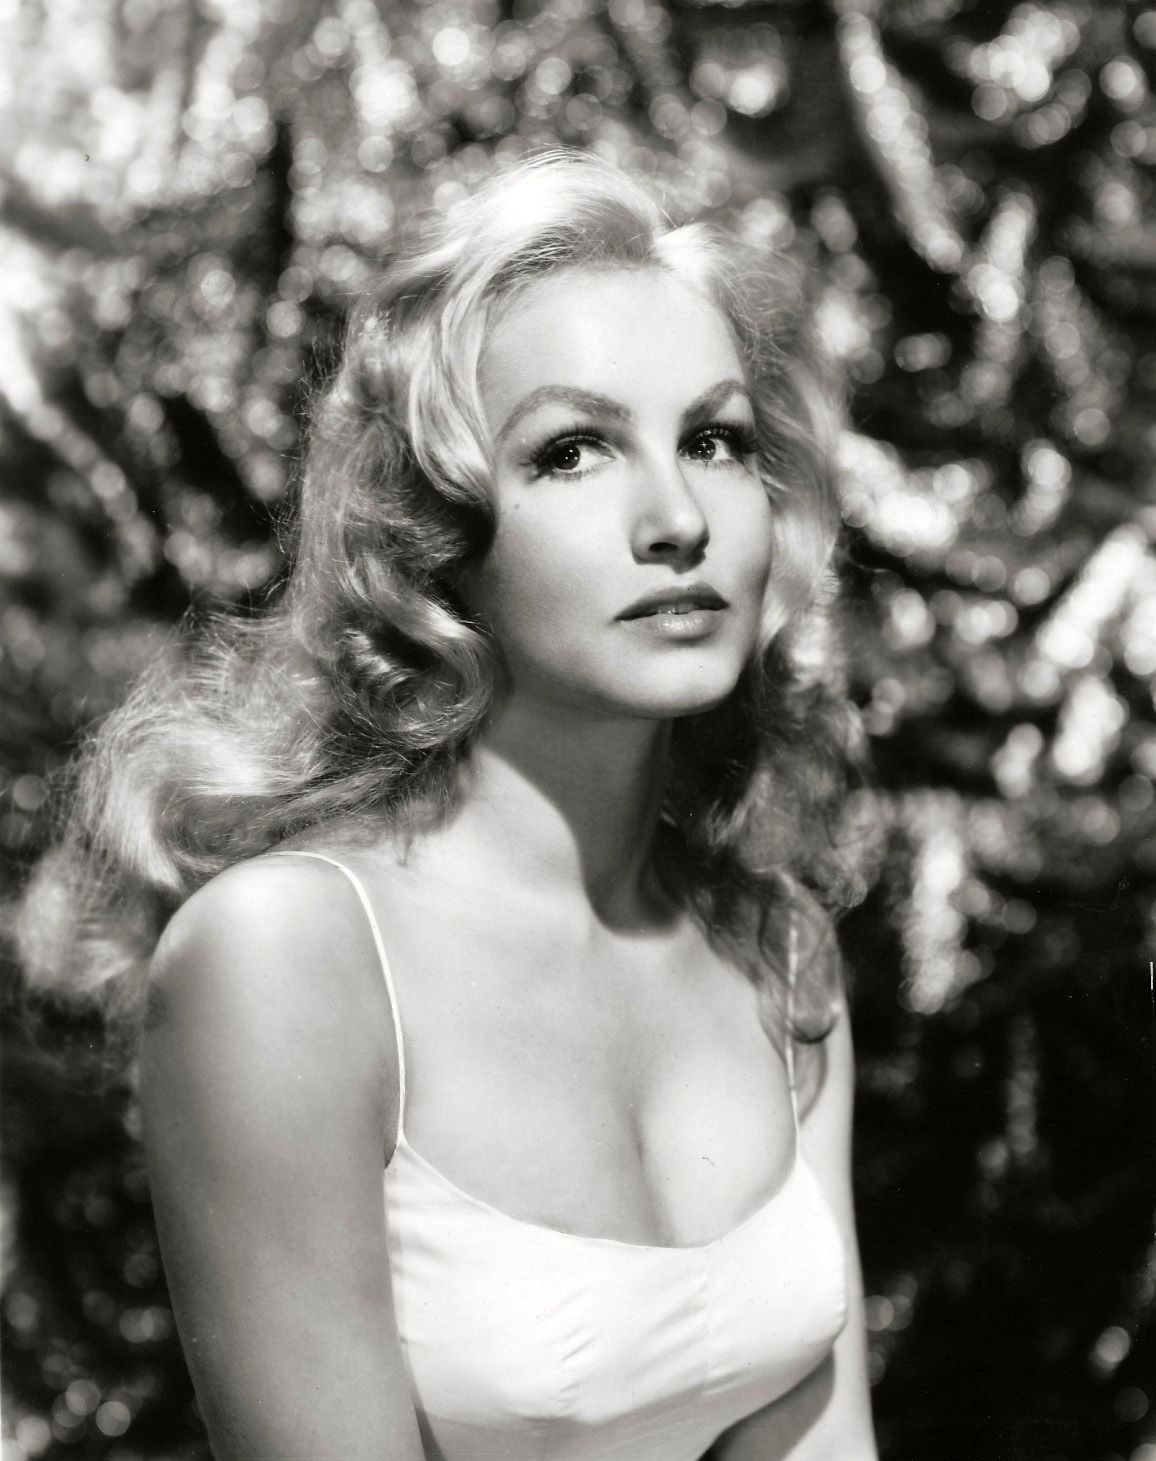 Julie Newmar born August 16, 1933 (age 85)